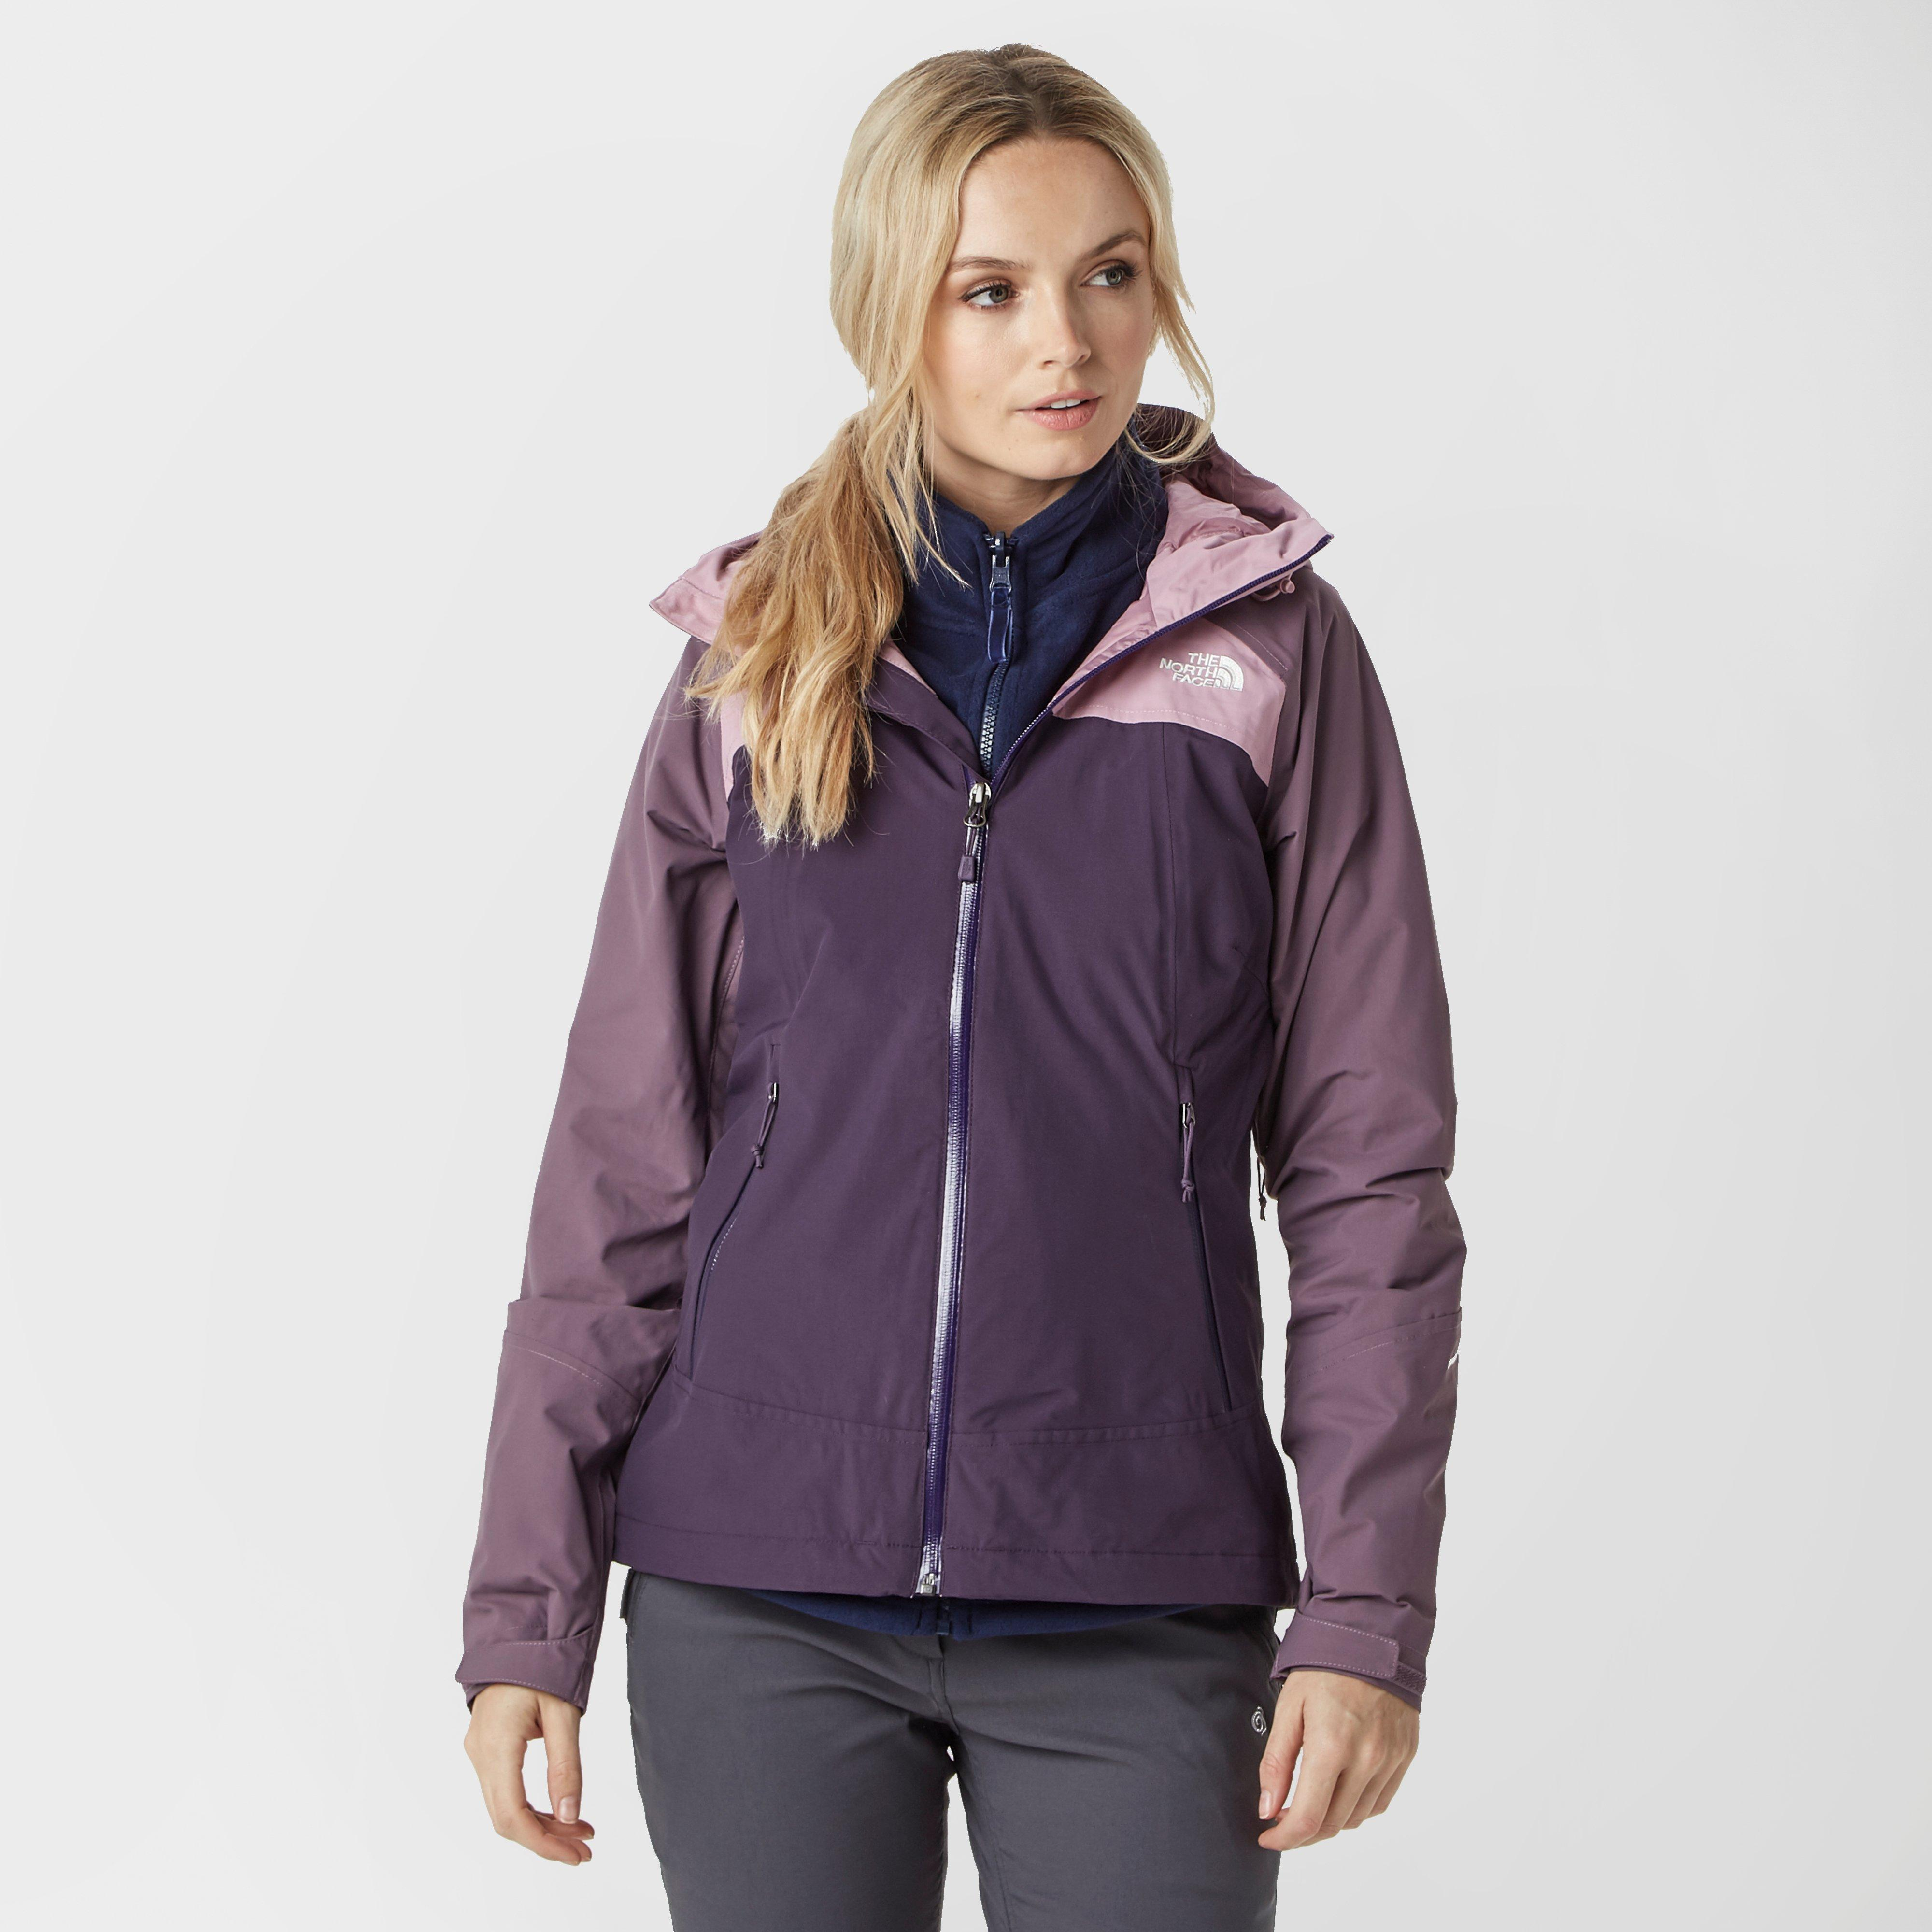 promo code north face stratos jacket red 9a201 c410e